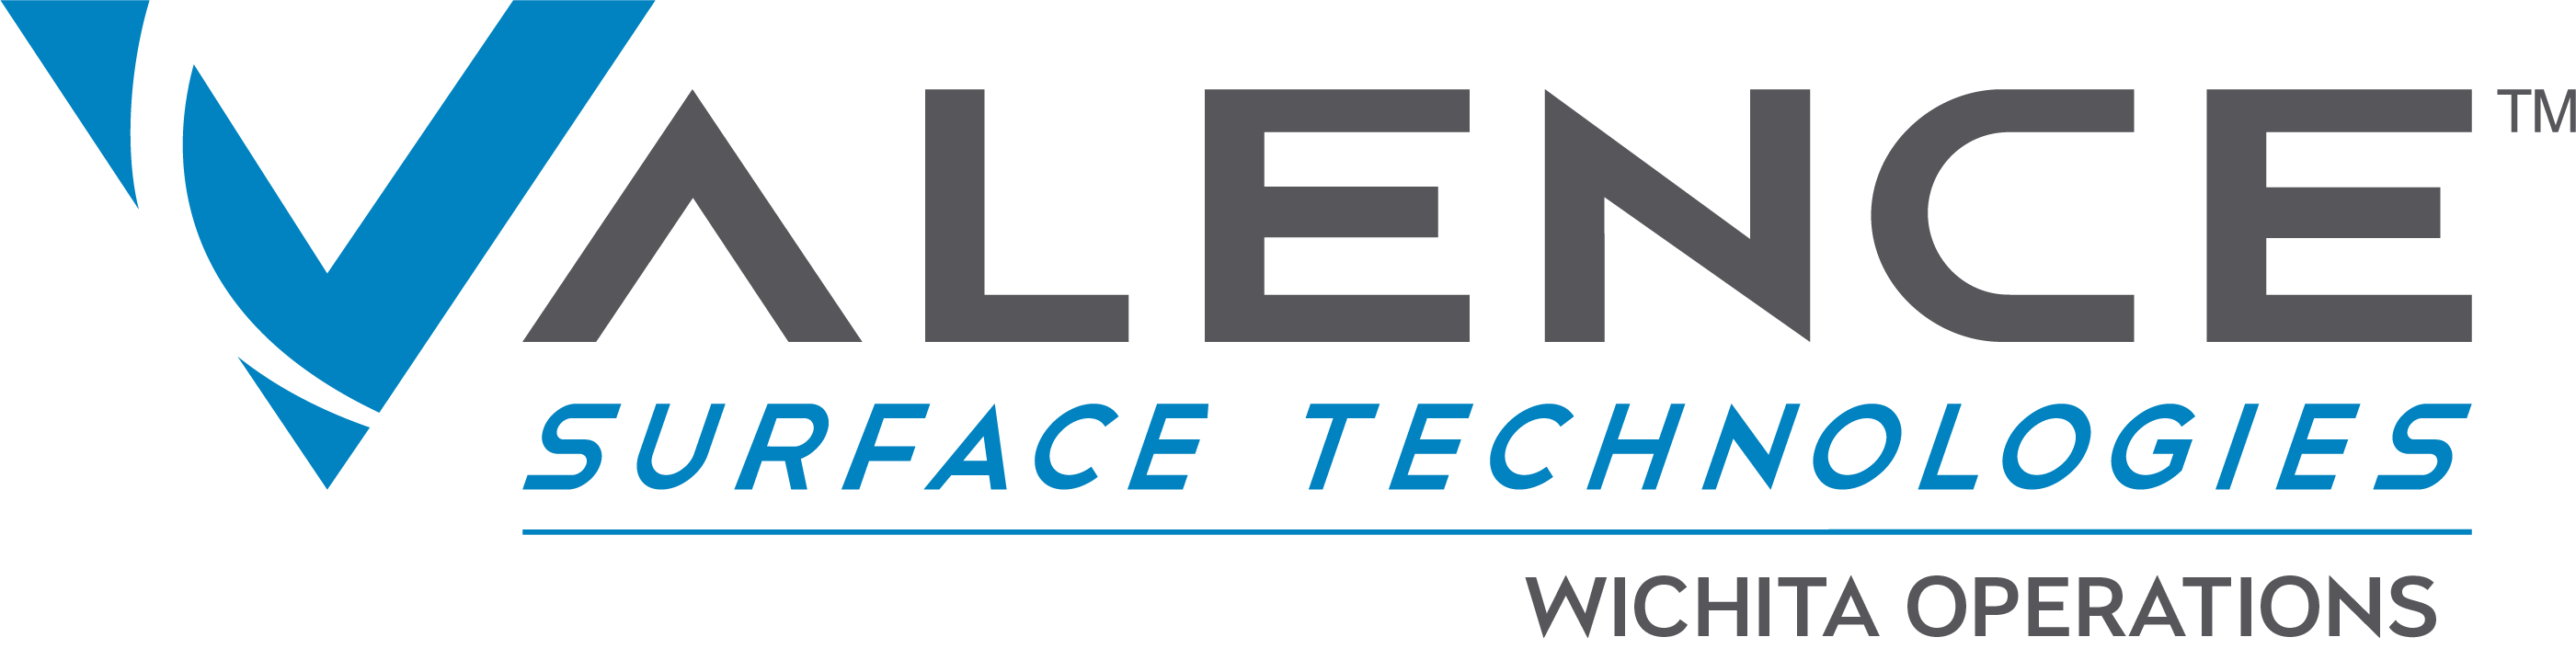 Valence Surface Technologies Wichita logo